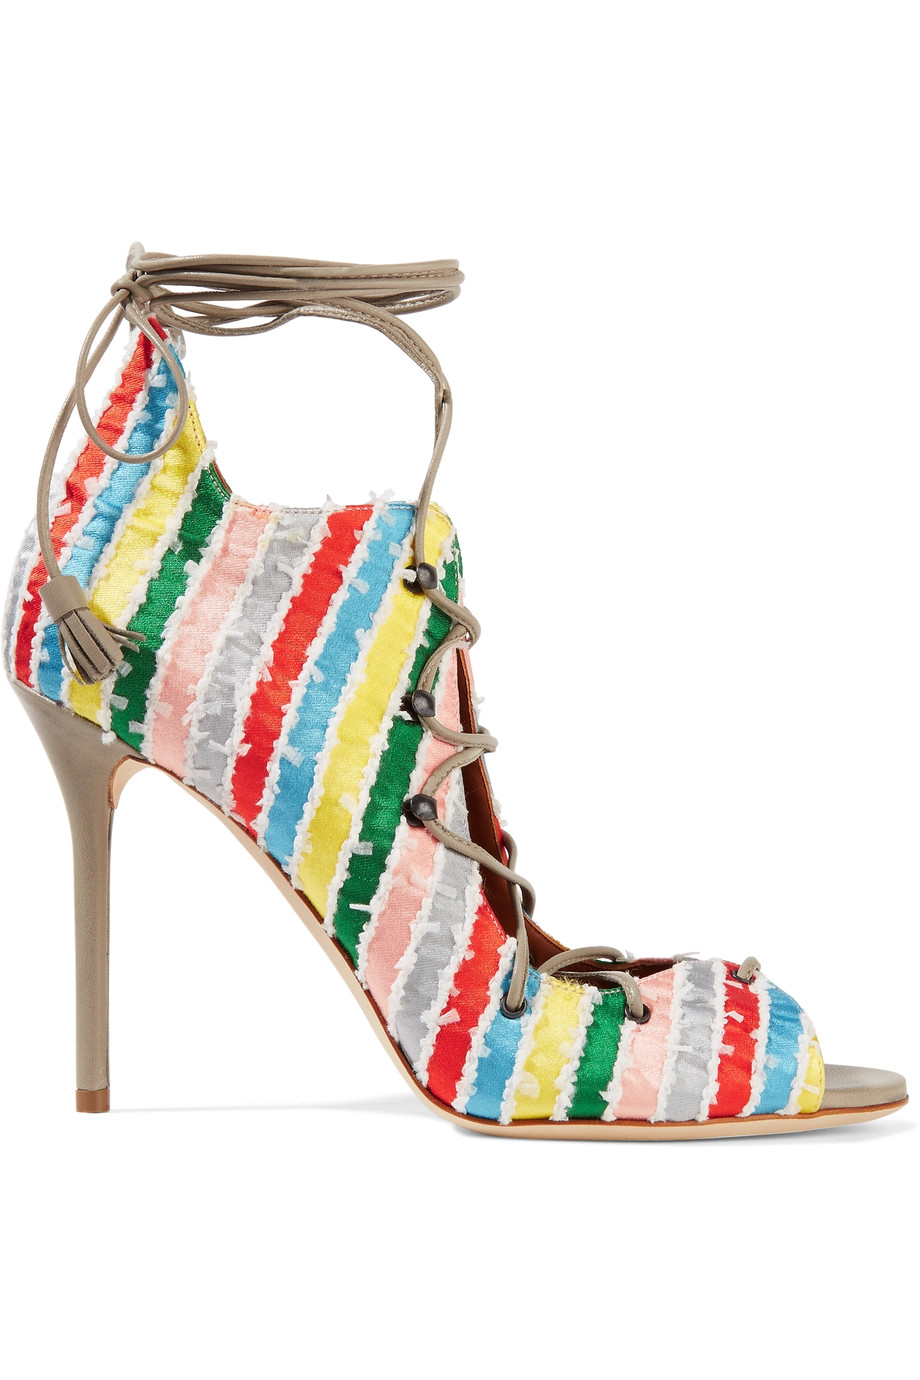 MALONE SOULIERS Savannah Lace-Up Leather-Trimmed Striped Satin Sandals